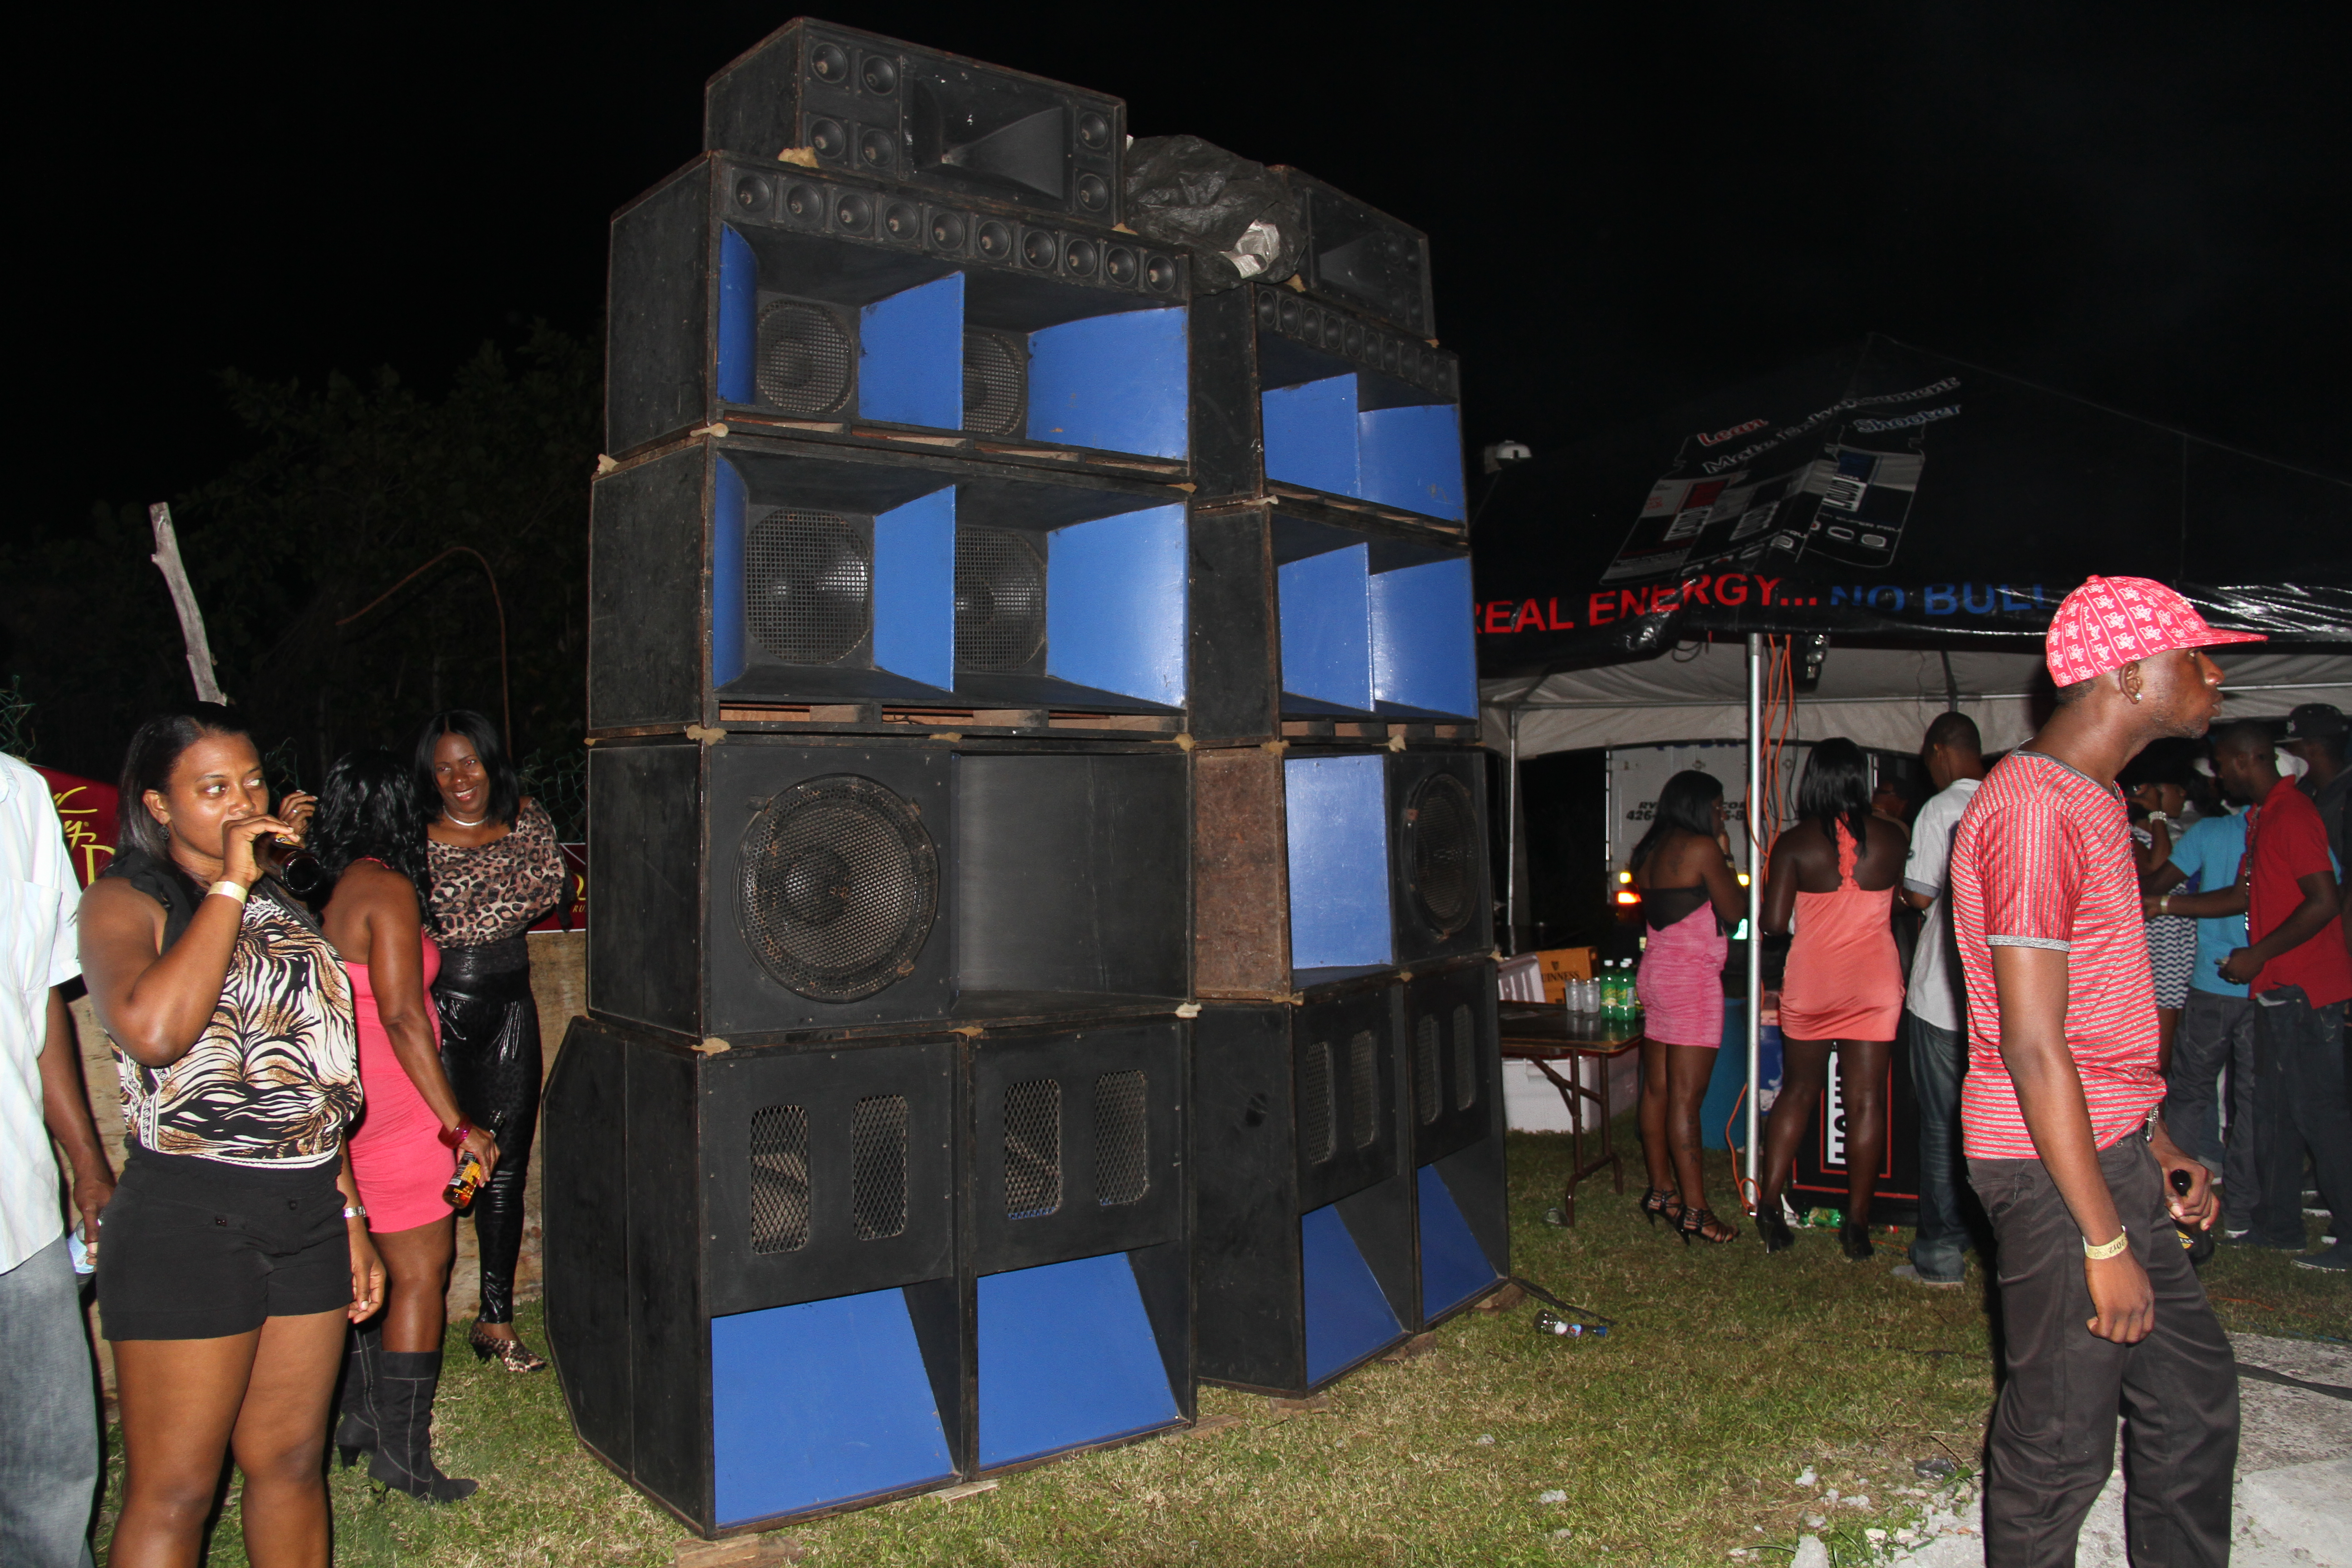 jamaican sound system speaker boxes. file:bass odyssey sound system speaker column, tropical hut, st. mary, jamaican boxes